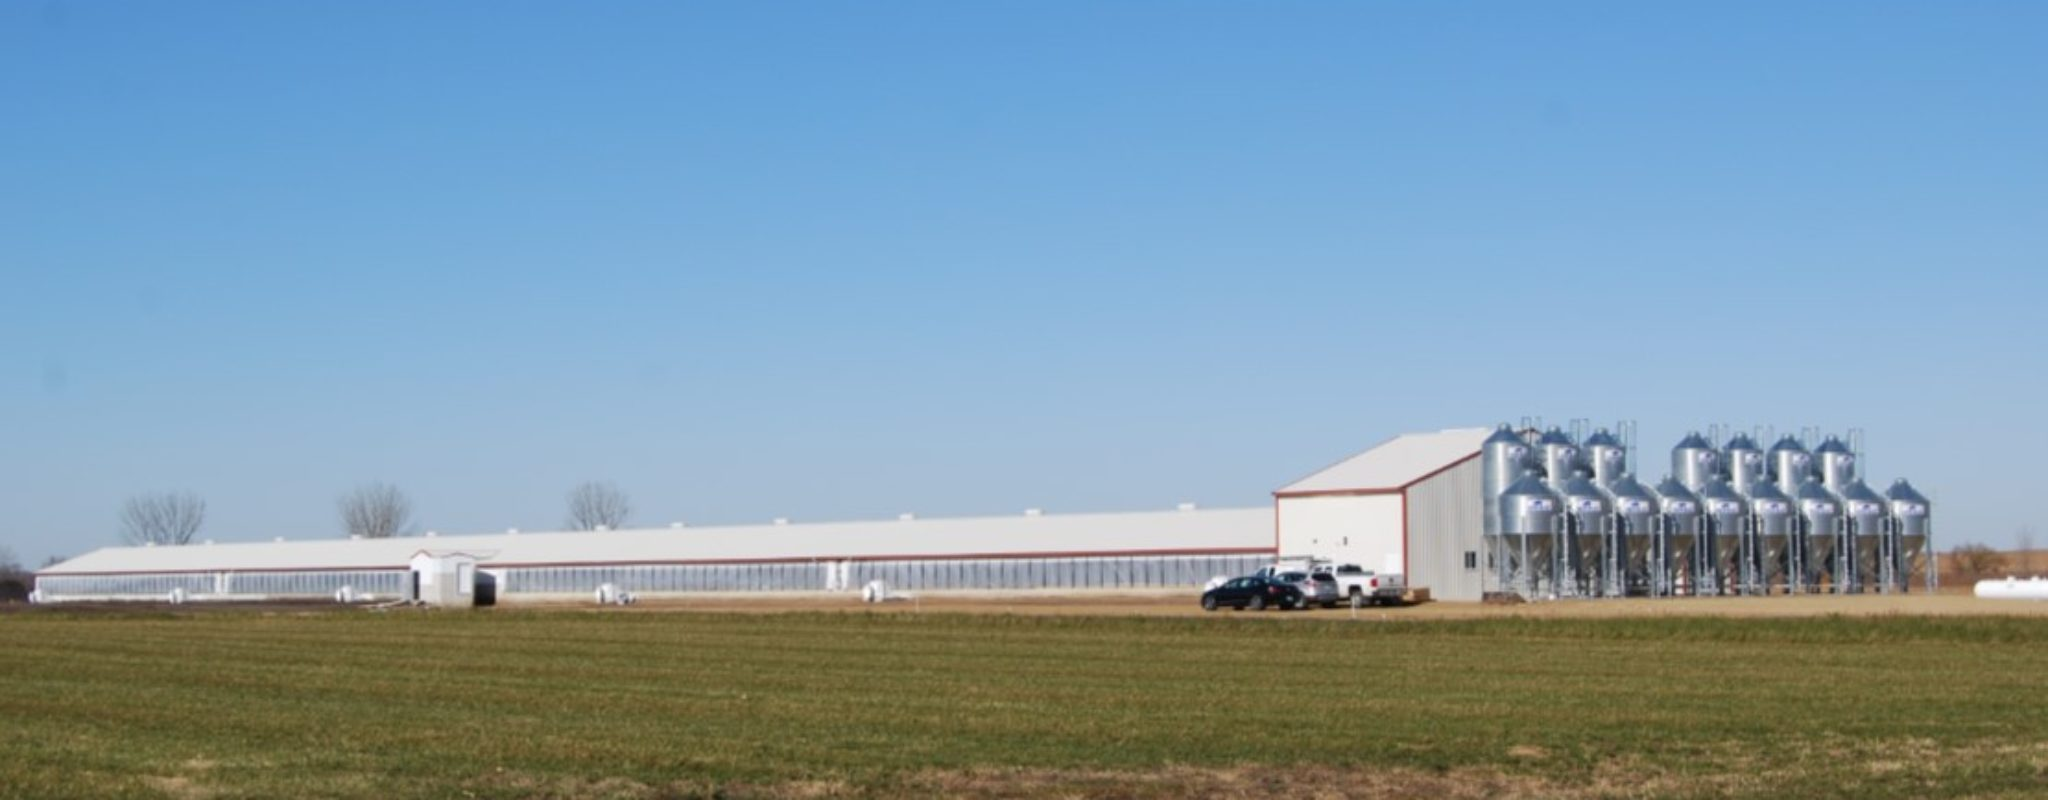 Christensen Farms Opens New Research Facility